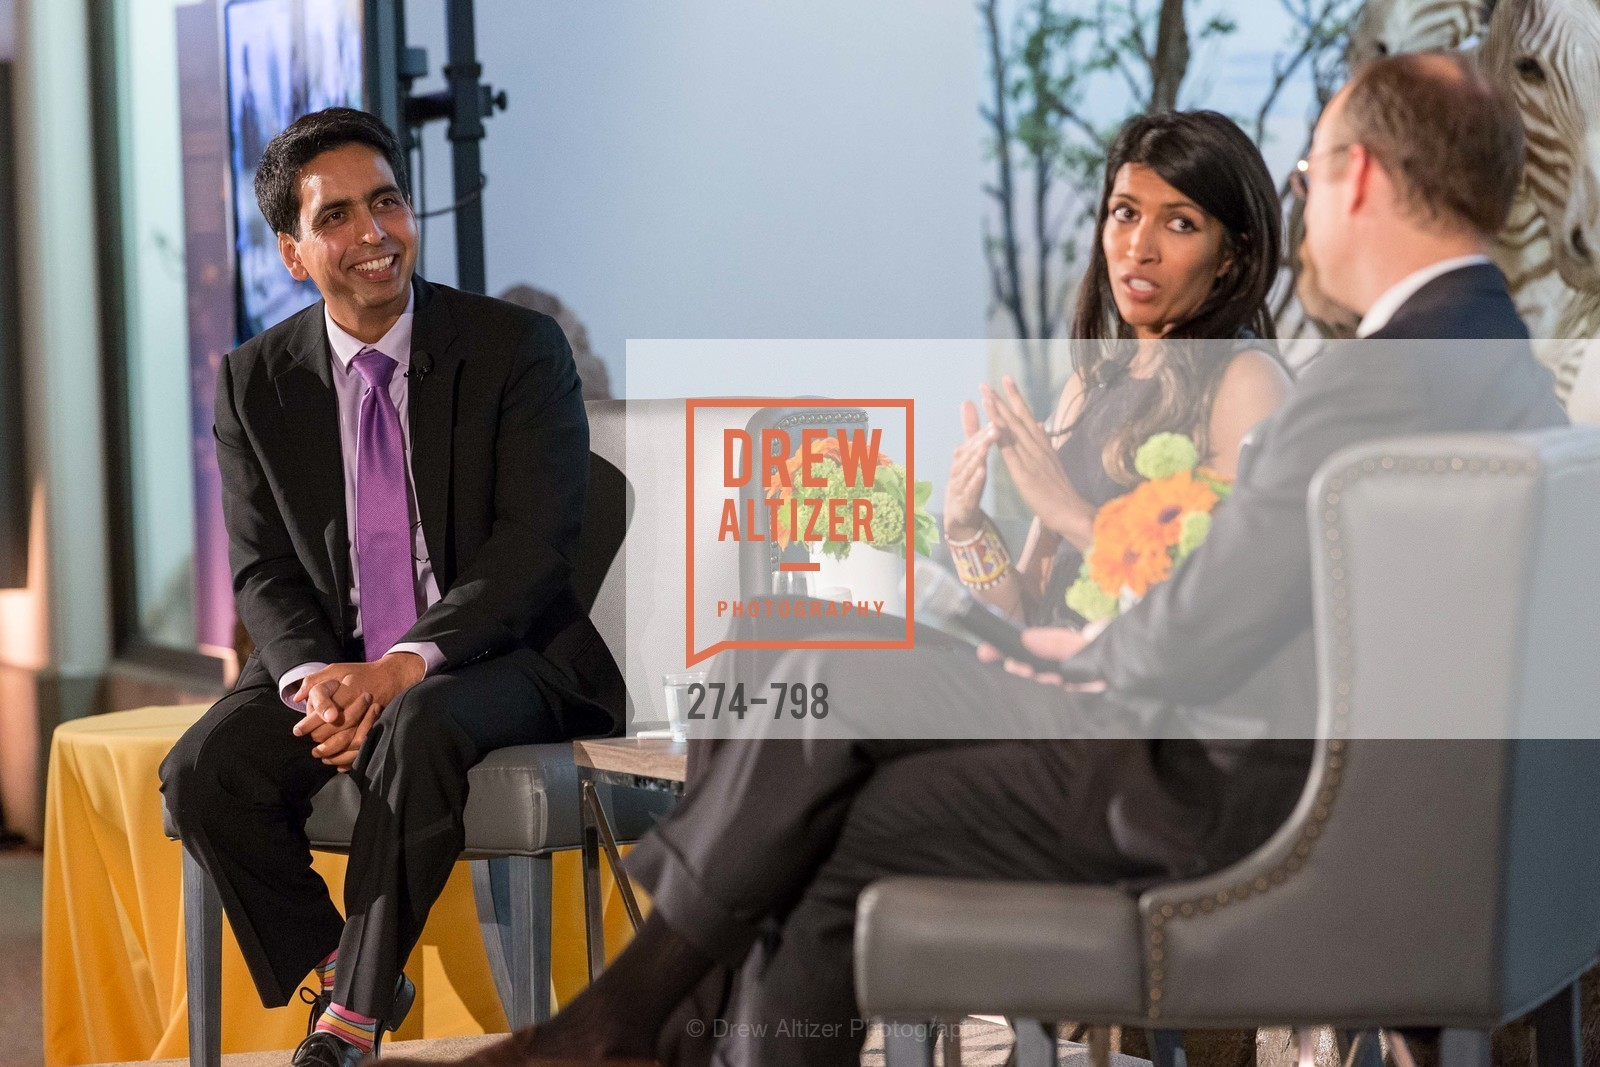 Sal Khan, Leila Janah, CALIFORNIA ACADEMY OF SCIENCES - Big Bang Gala 2015, US, April 24th, 2015,Drew Altizer, Drew Altizer Photography, full-service agency, private events, San Francisco photographer, photographer california